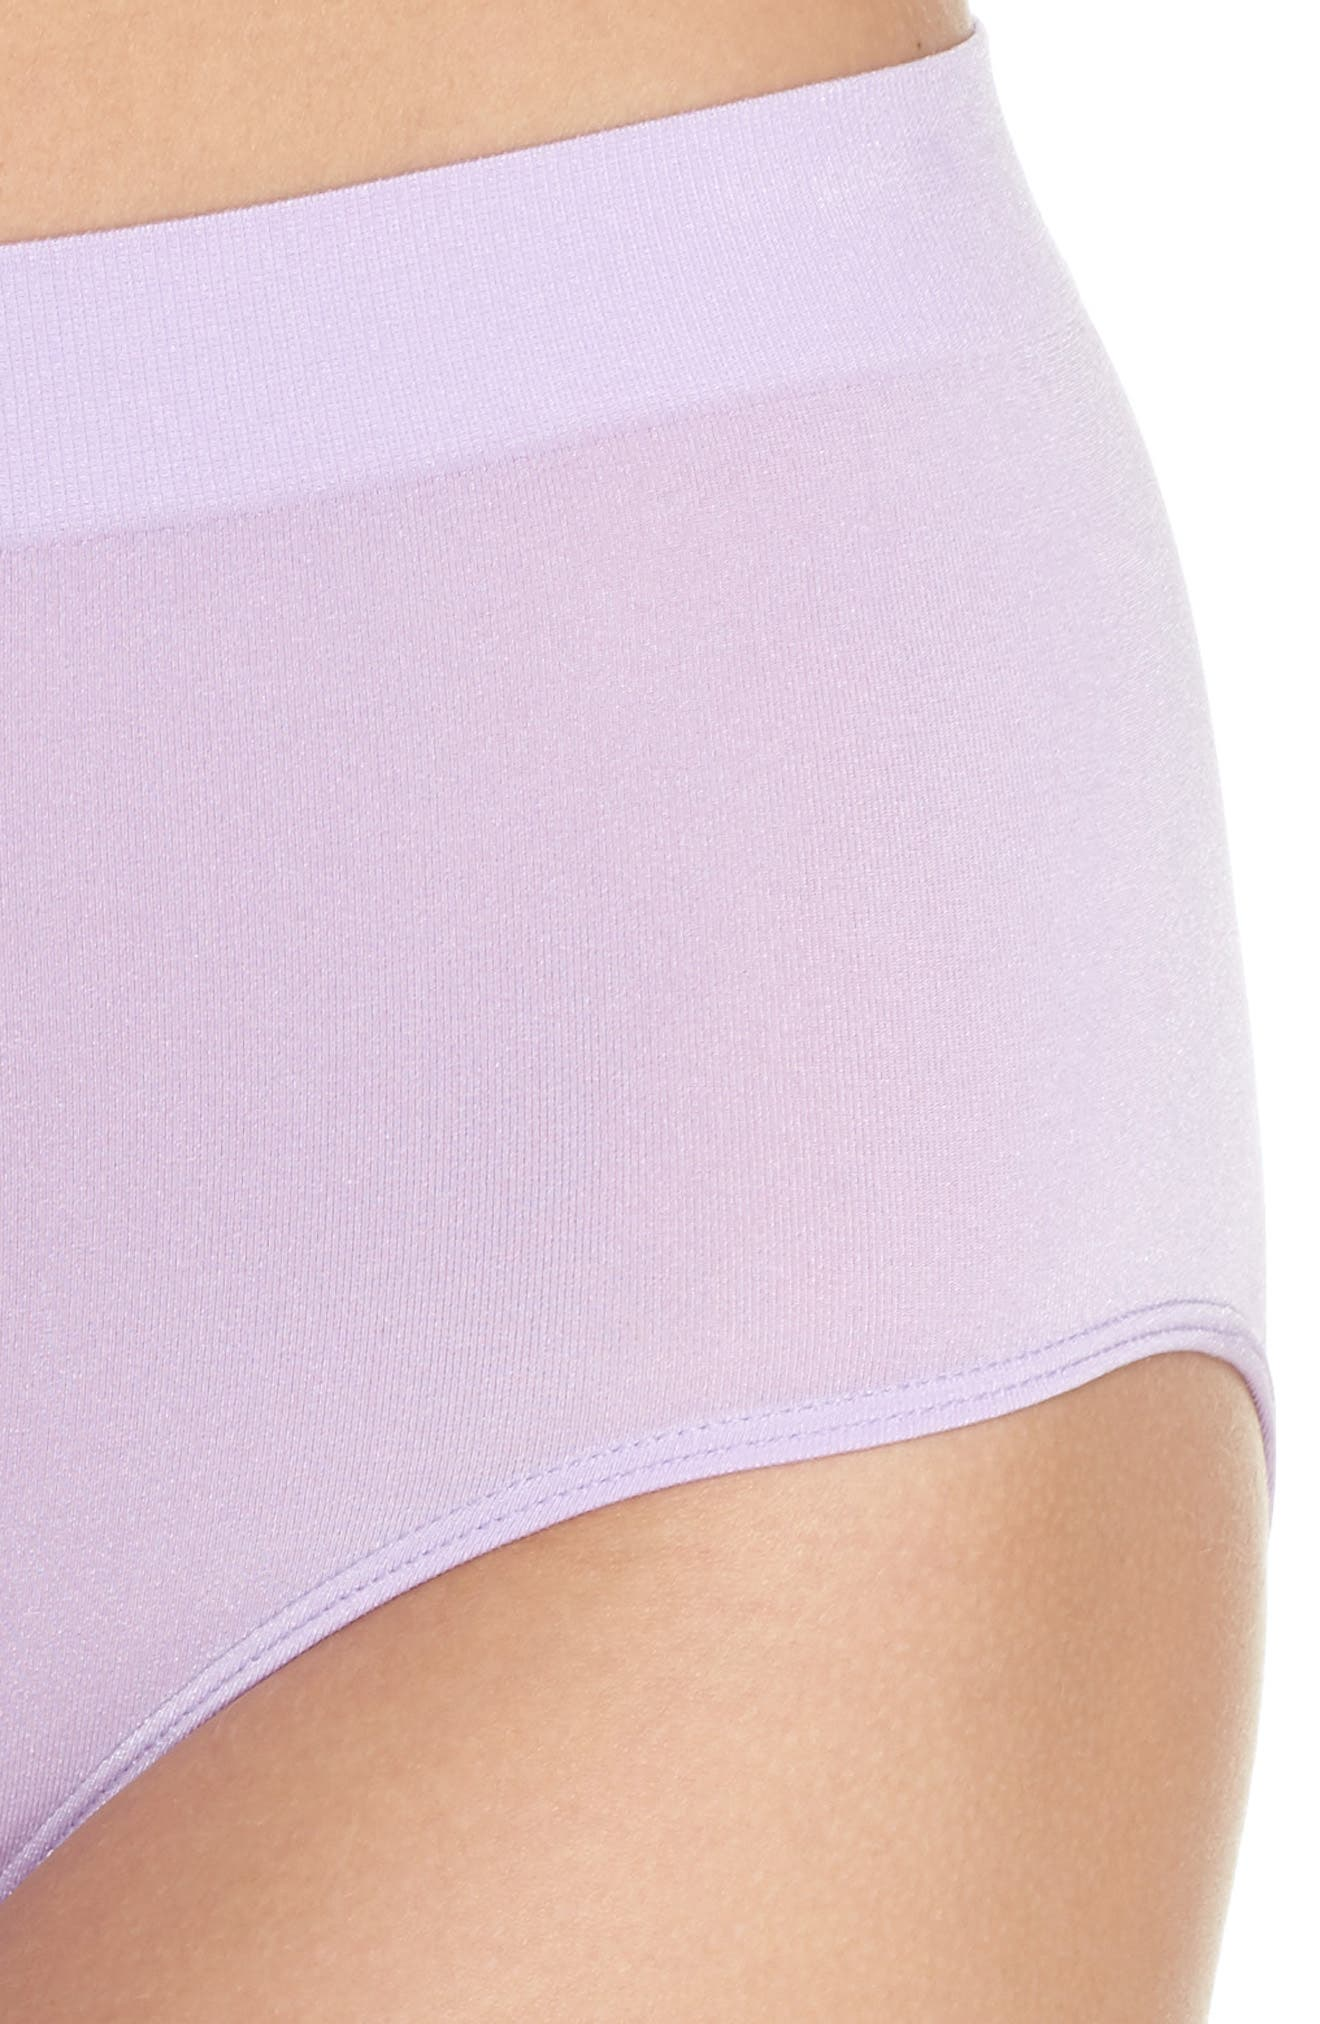 B Smooth Briefs,                             Alternate thumbnail 189, color,